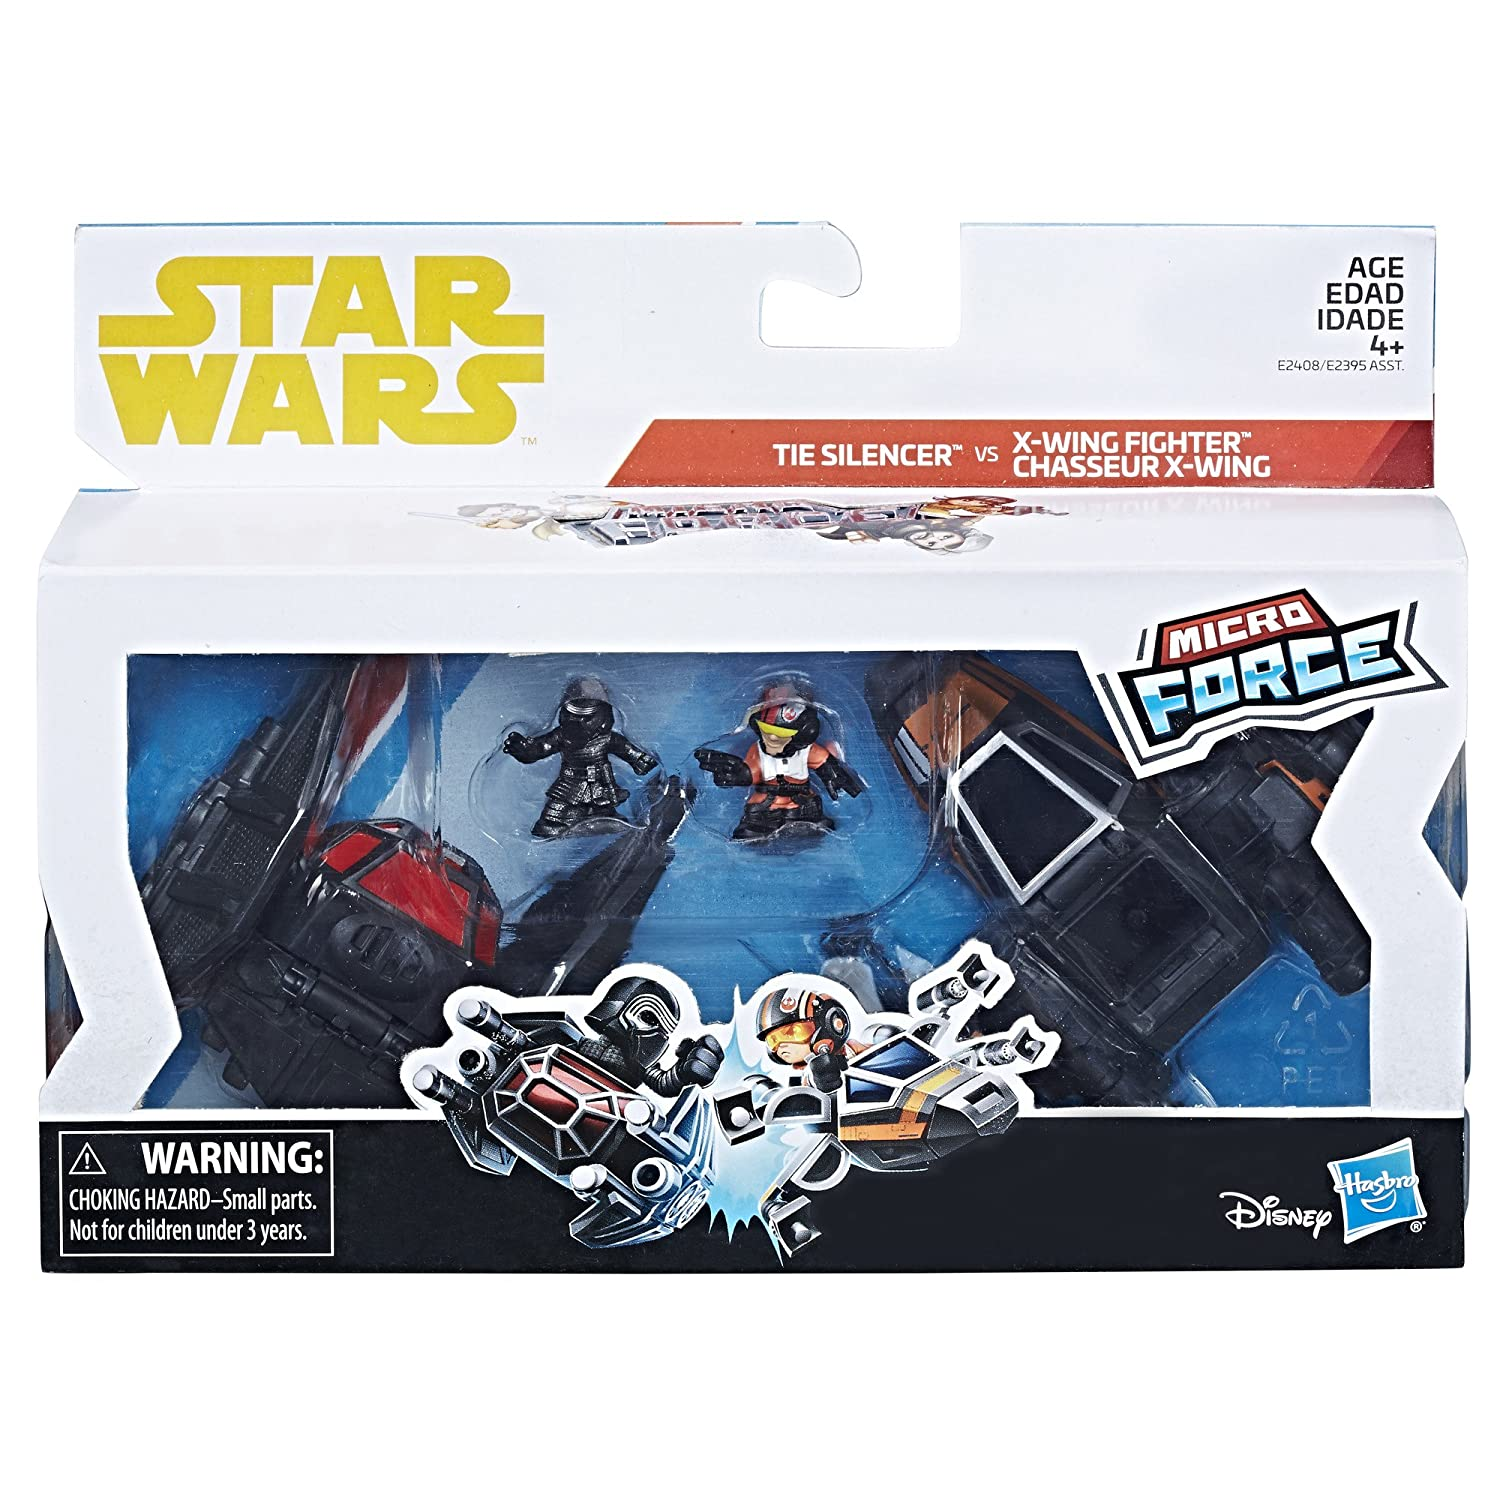 Star Wars Sw S2 DLX Vehicle Two Pack Hasbro E2408